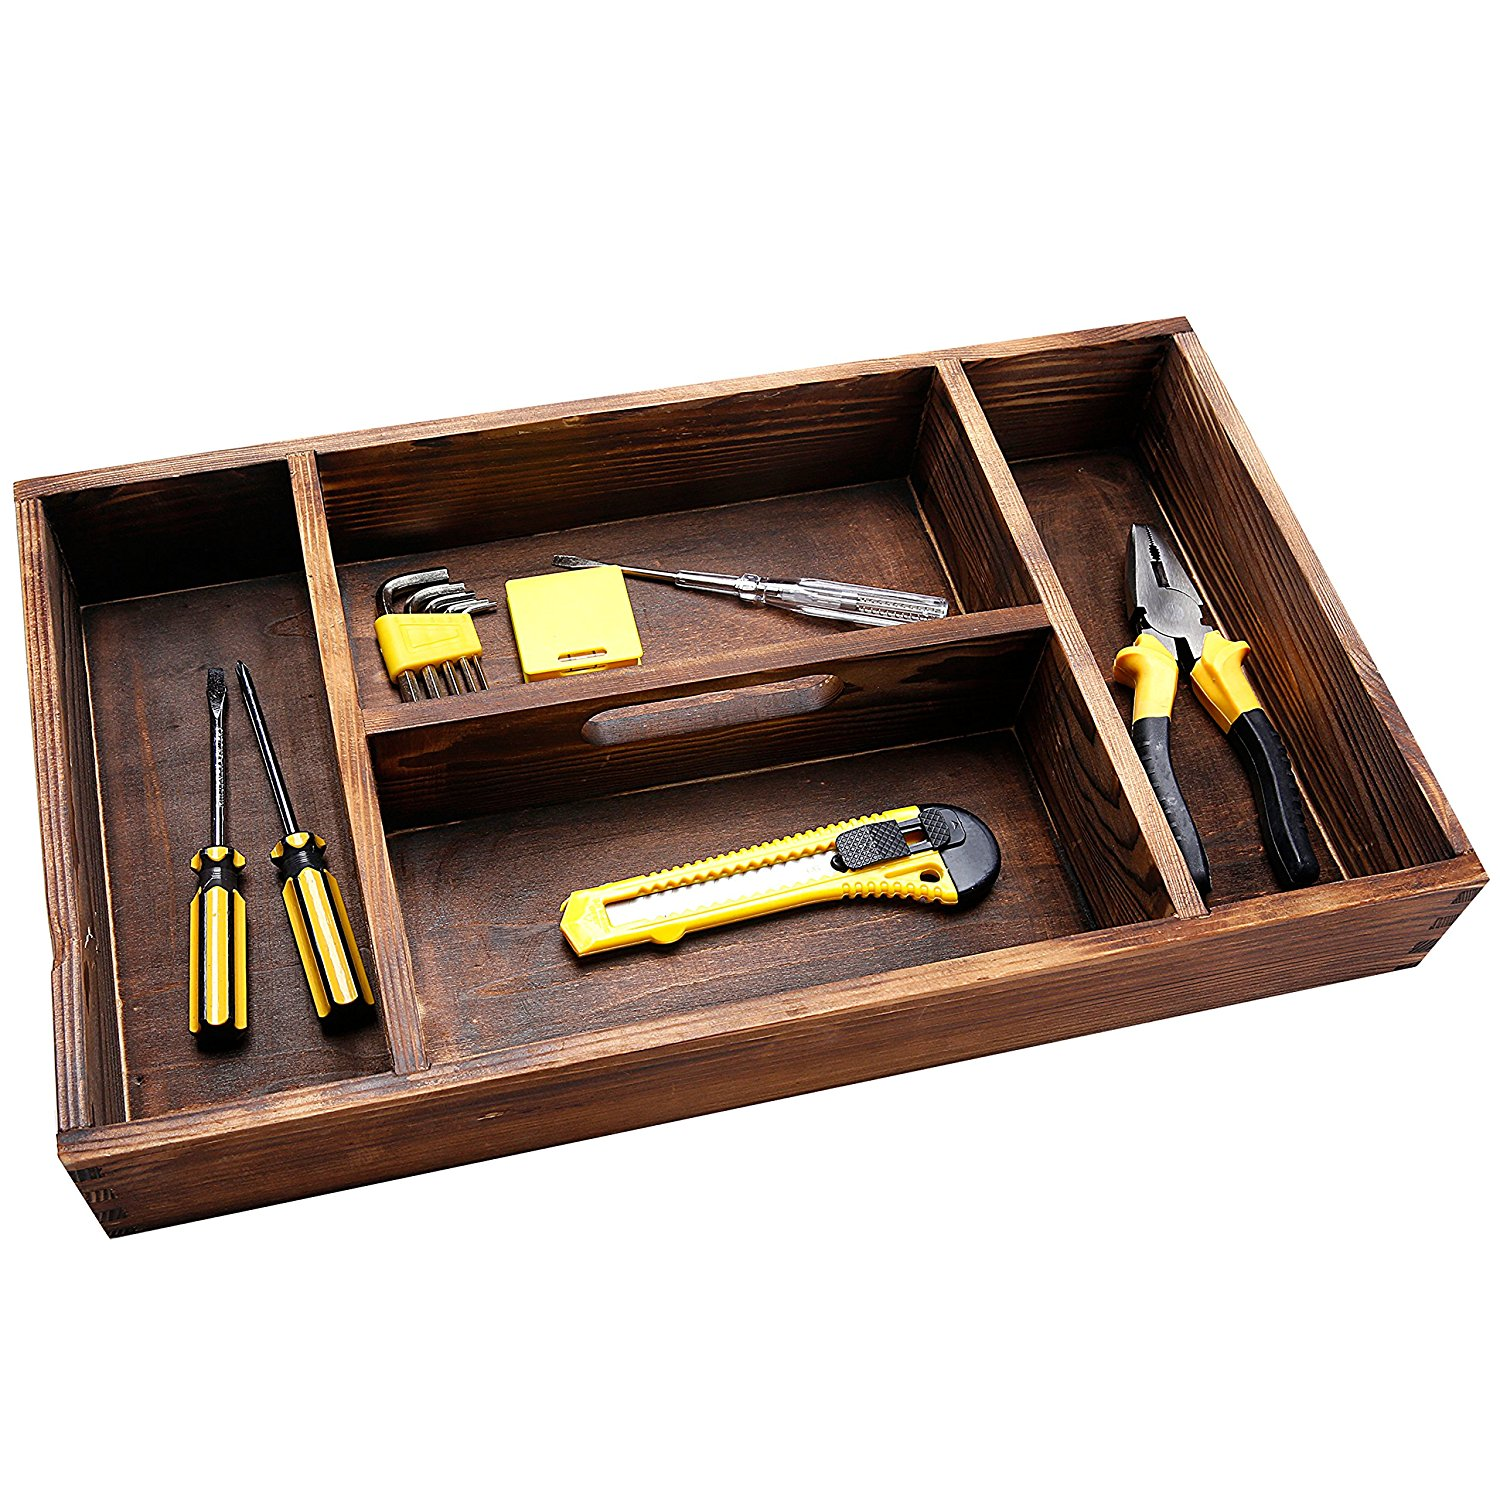 4 Compartiment Torched Hout Office Supply Lade Keuken Bestek Organizer